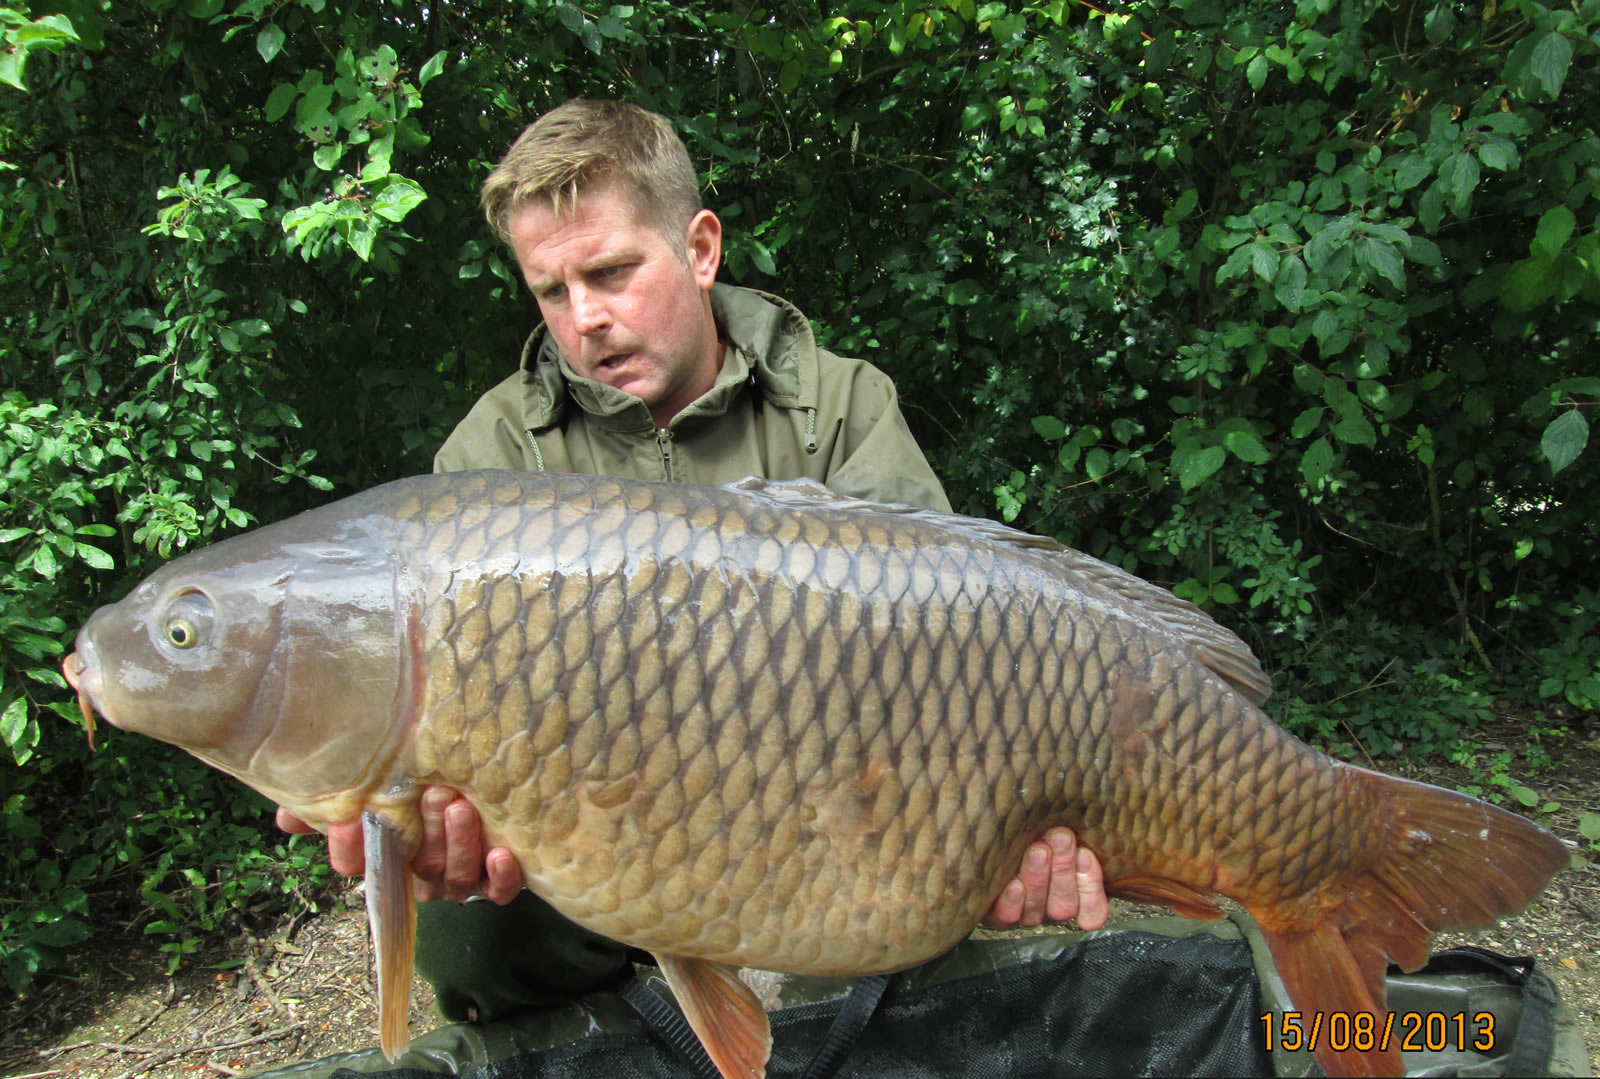 Simon 40.03 Common Carp from the Piont